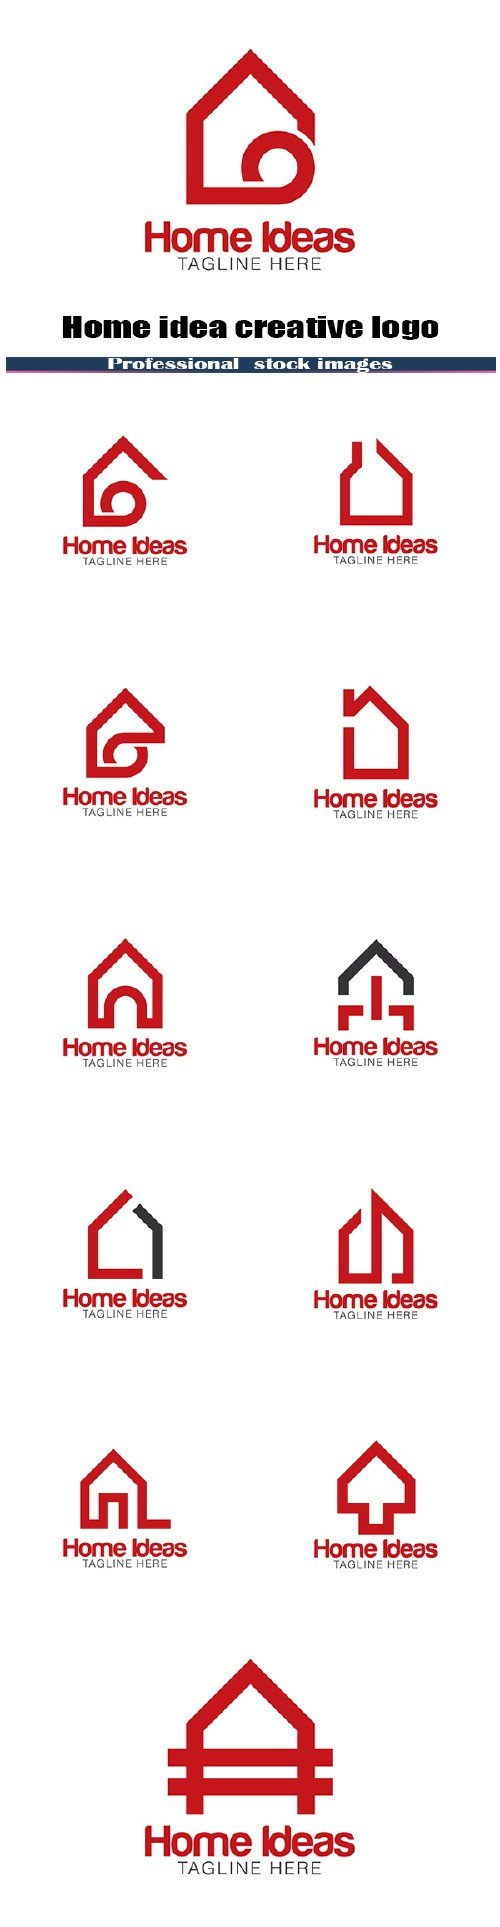 Home idea creative logo